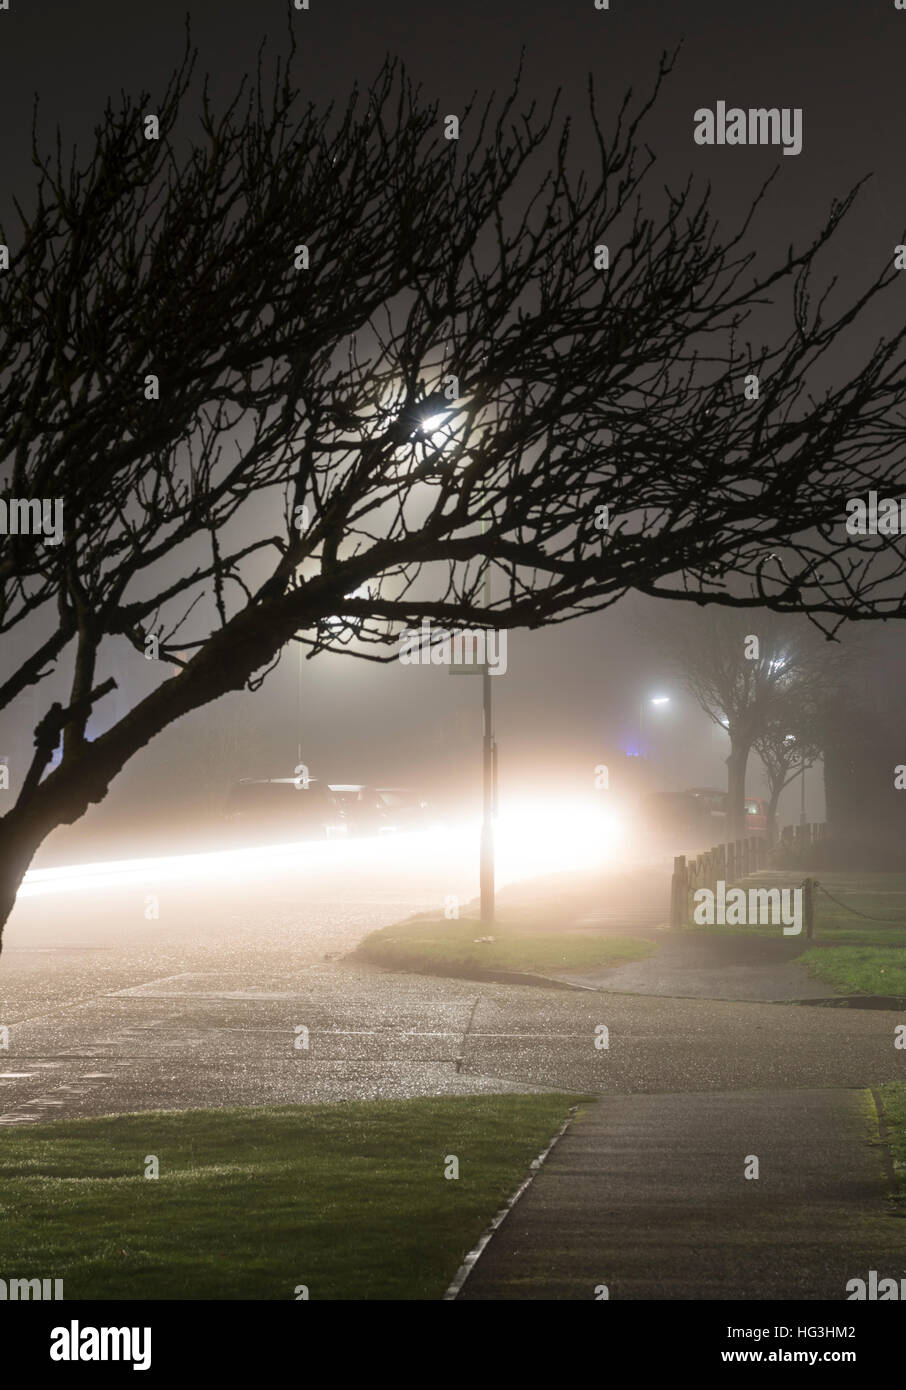 Residential road with a car going past in foggy weather at night. Foggy weather. Mist at night. Fog at night. - Stock Image